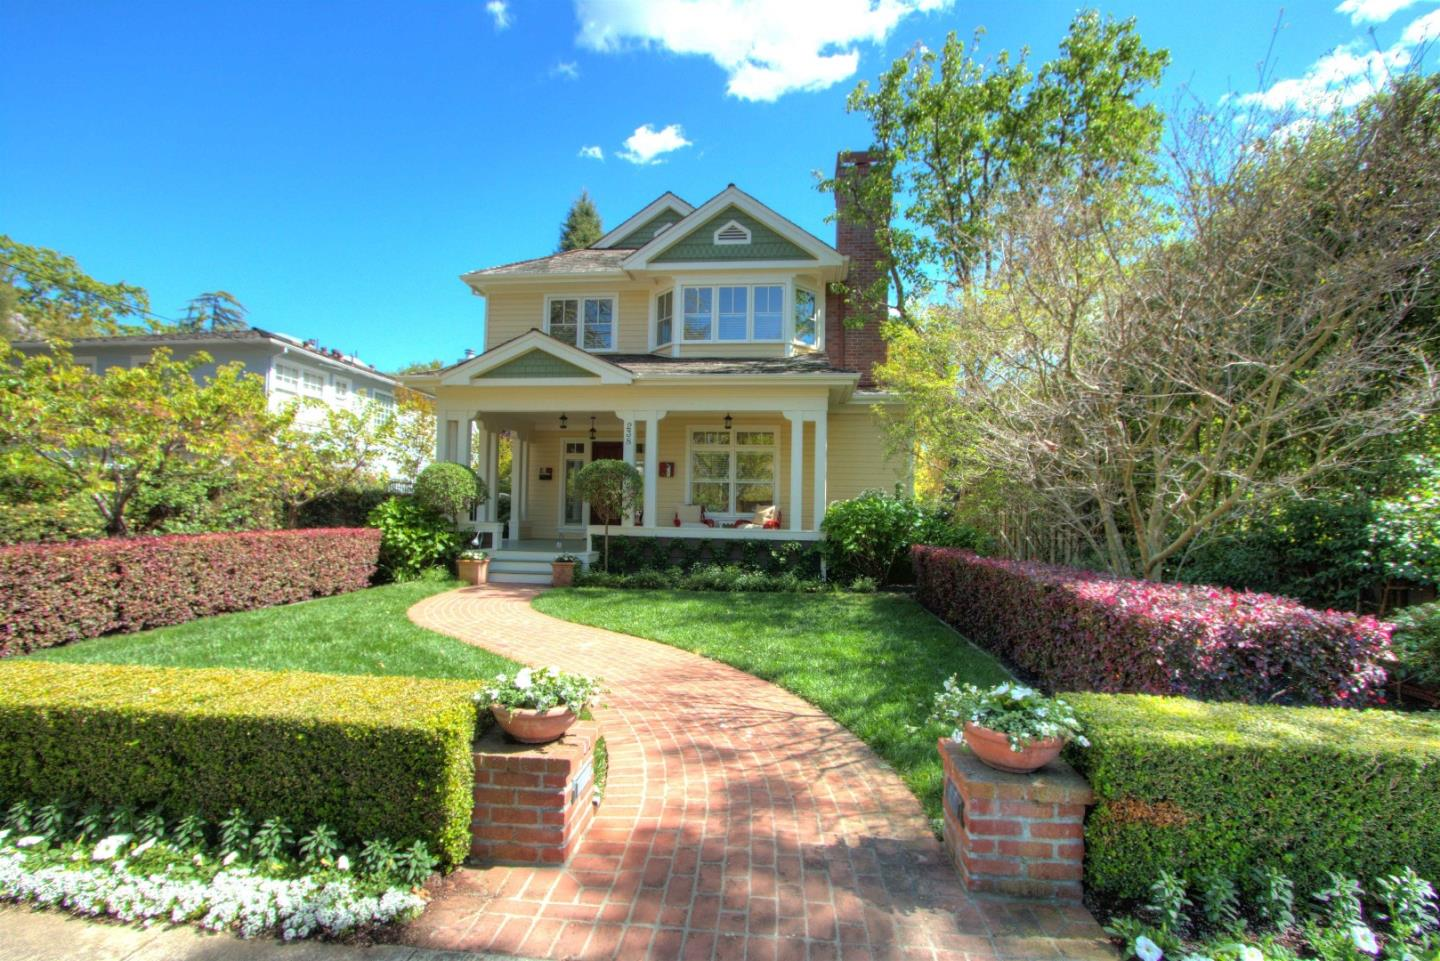 238 Seale Ave, Palo Alto, CA